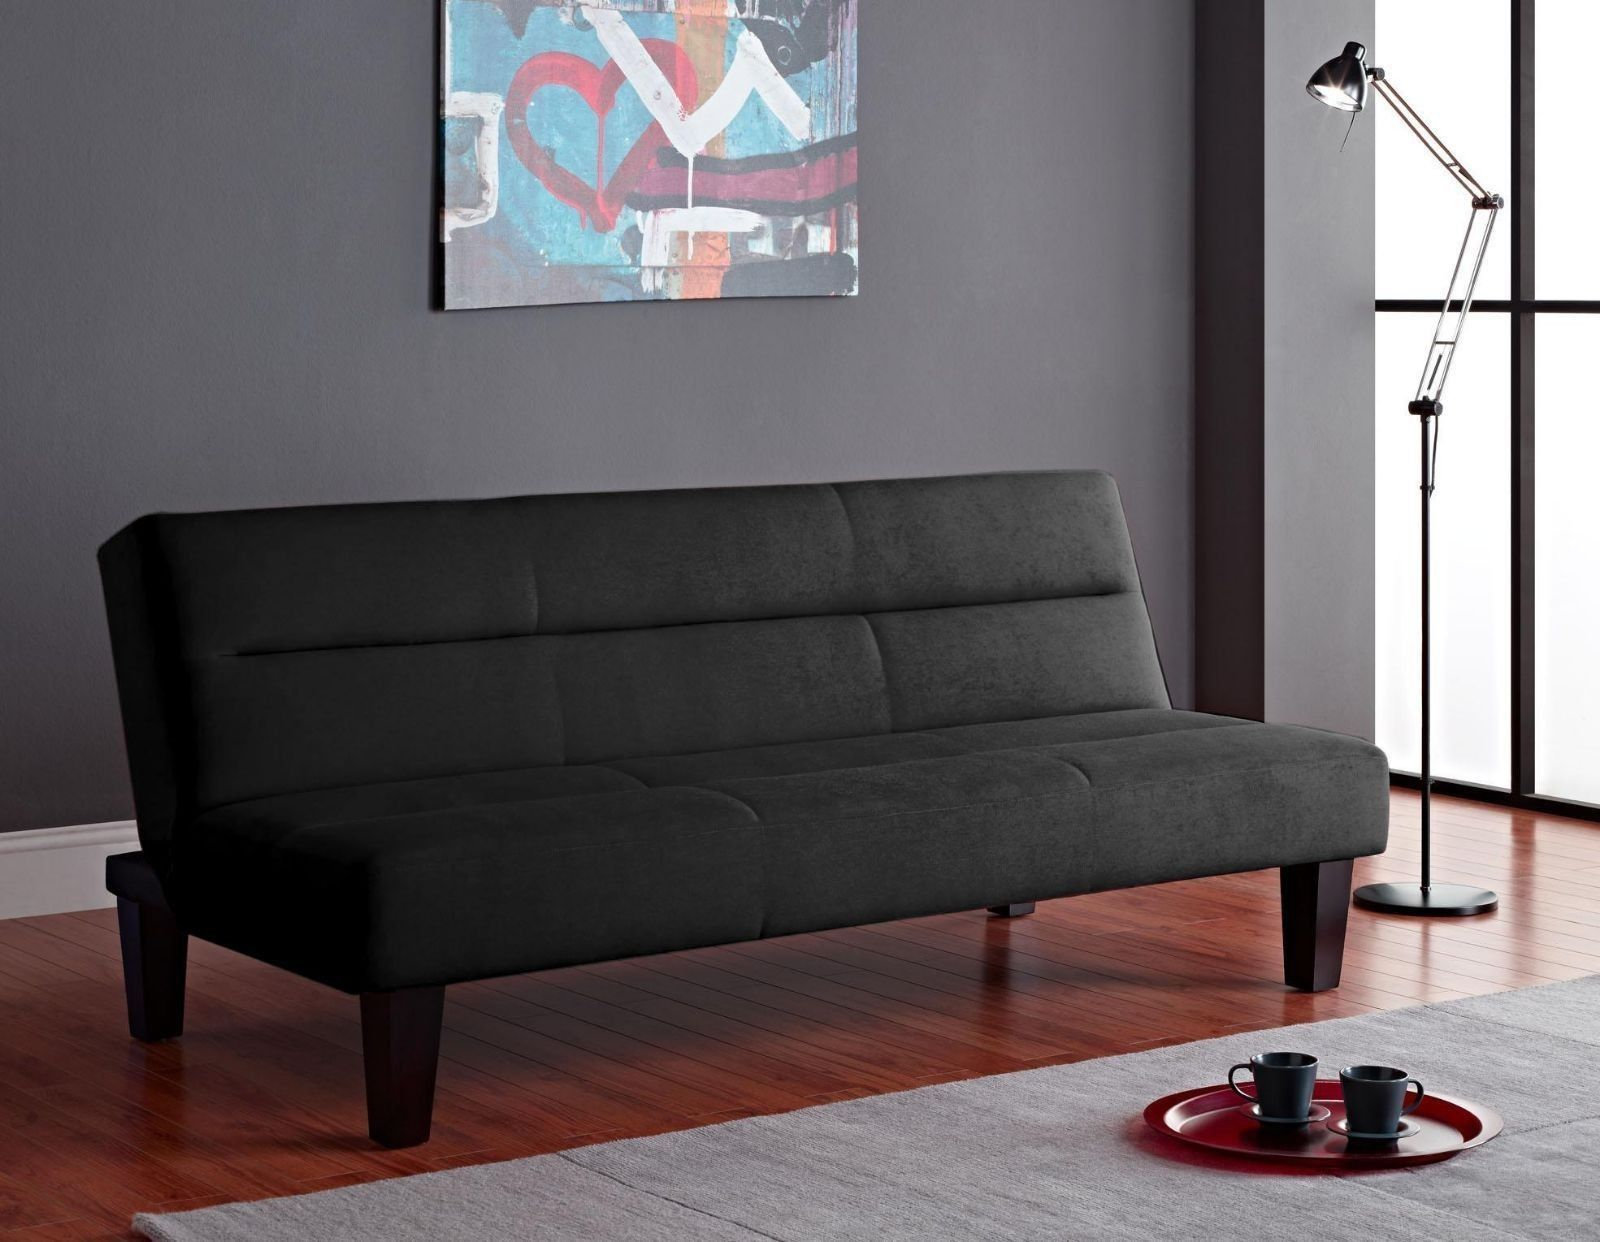 Futon sleeper sofa bed couch perfect for every space dorm modern styles futons frames covers - Best sleeper sofas for small spaces style ...